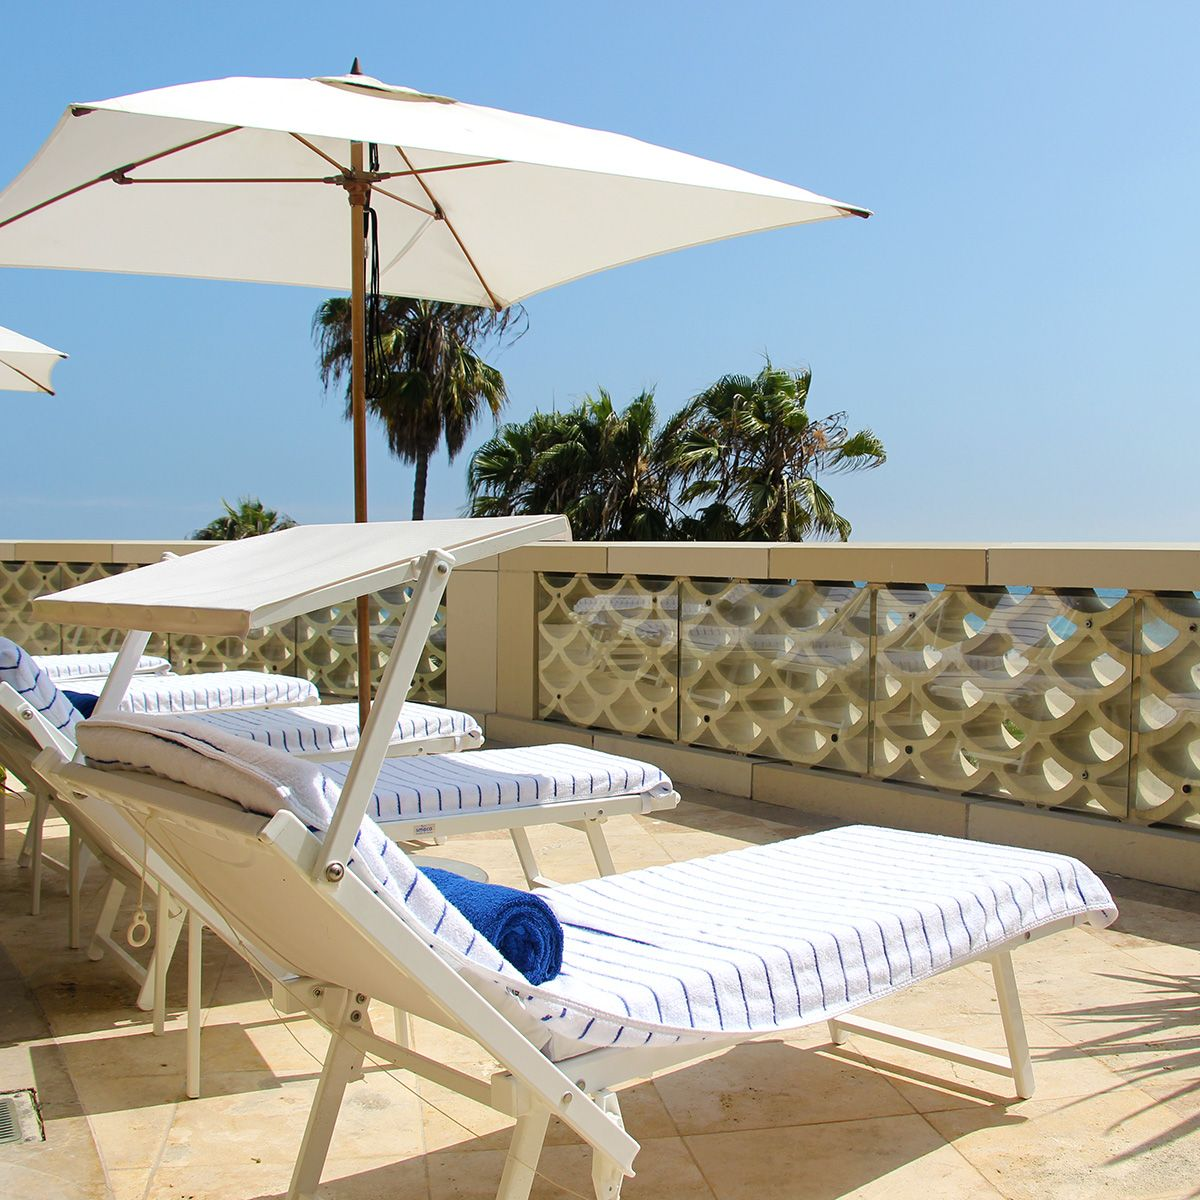 Brand New Luxury Smeca Lounge Chairs Imported From Italy Hotel Casa Del Mar Santa Monica